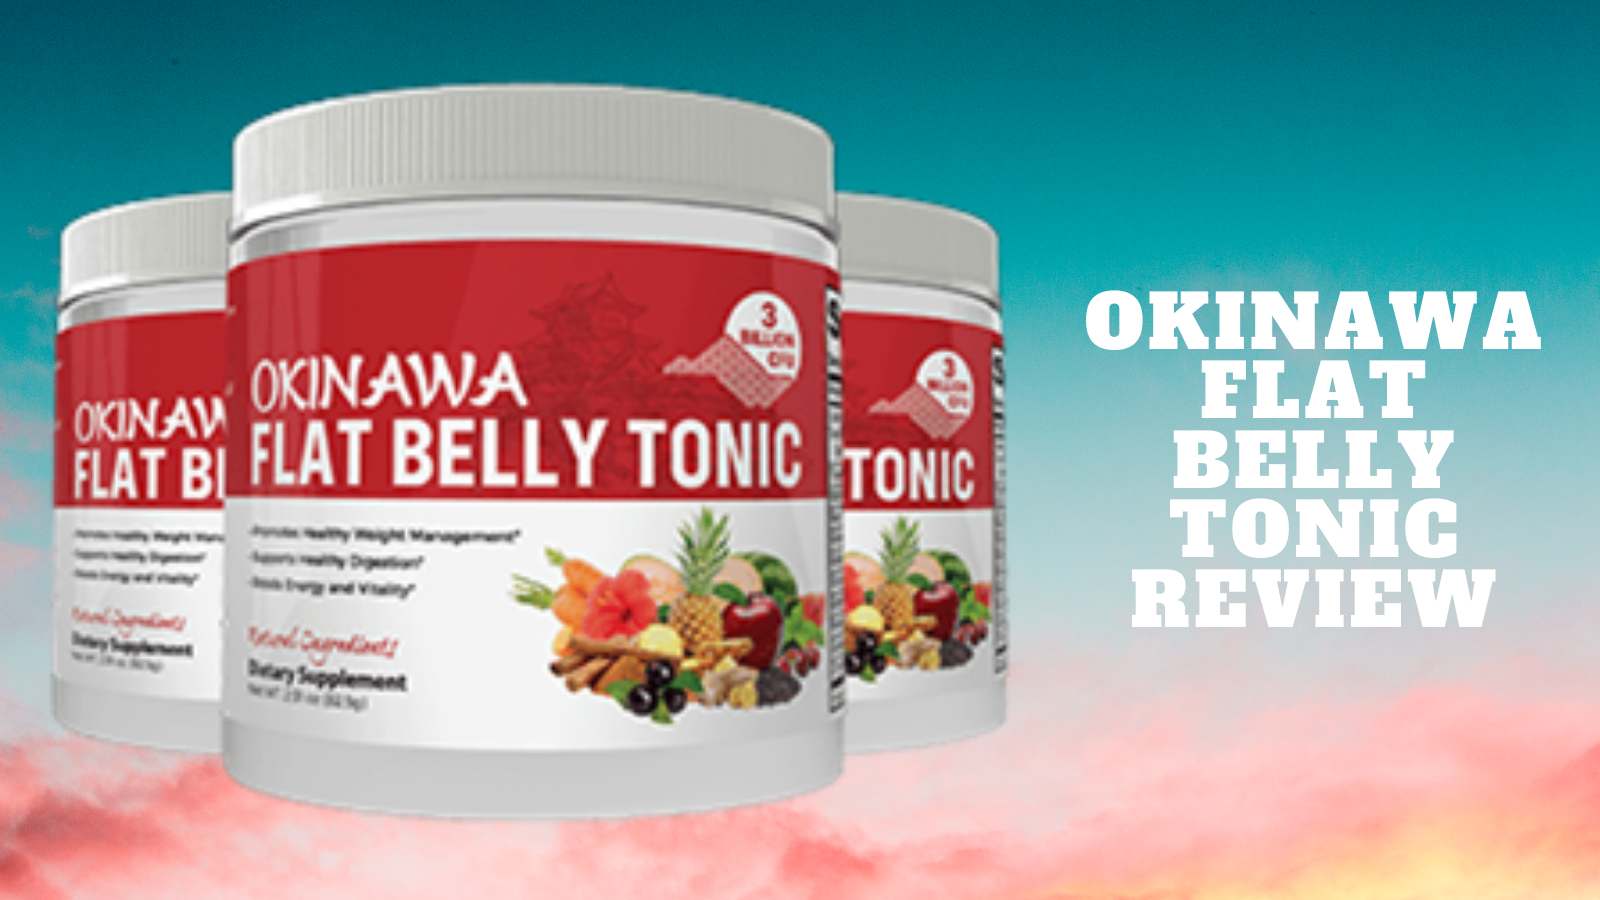 Okinawa Flat Belly Tonic Reviews-Should We Only Rely On Product Description?